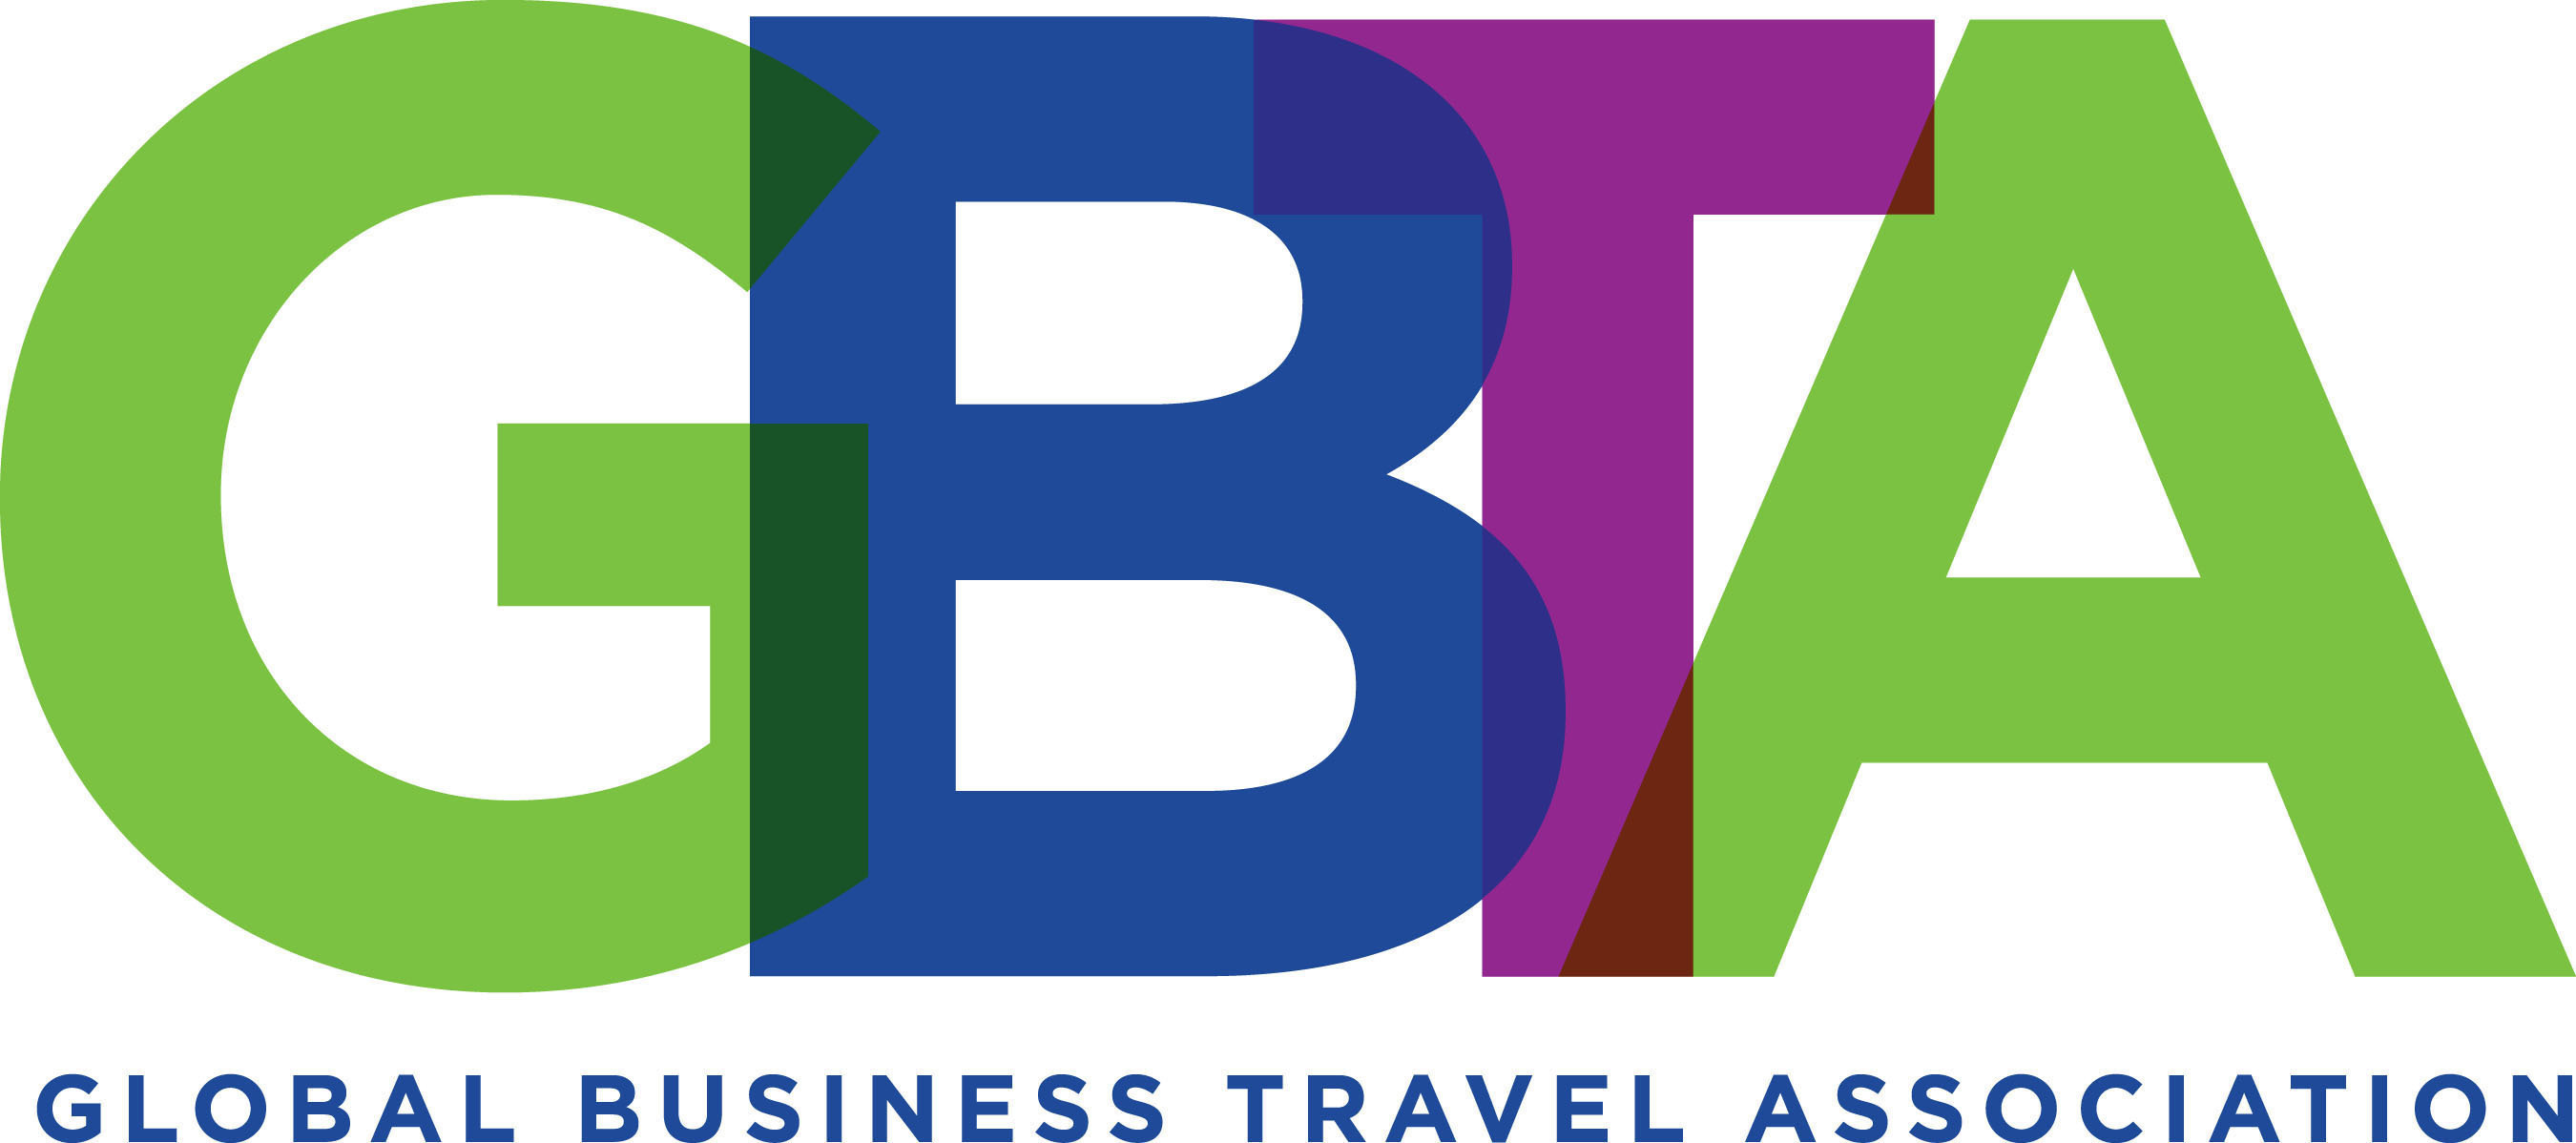 The Global Business Travel Association.